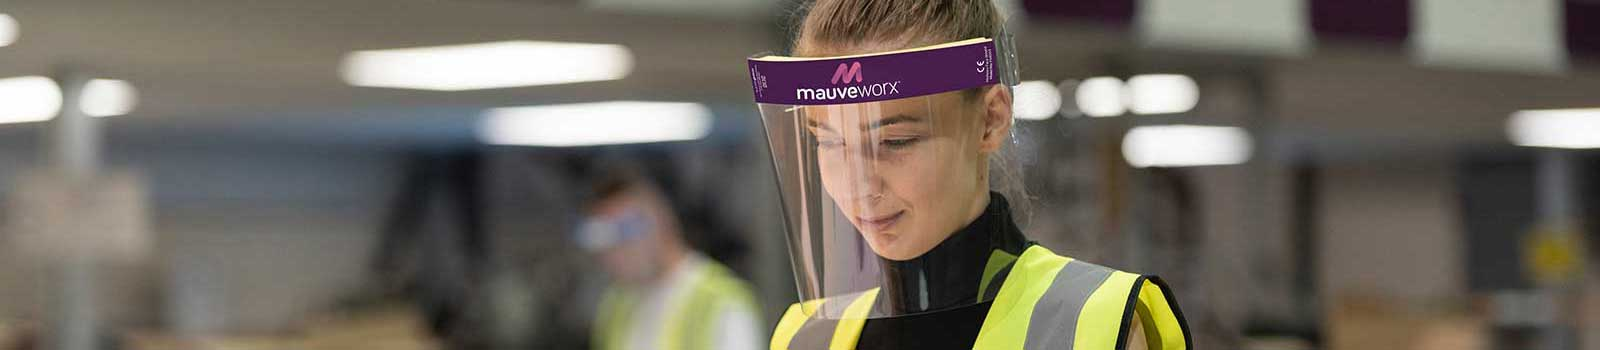 Key worker using custom branded face shield in factory wearing high vis jacket